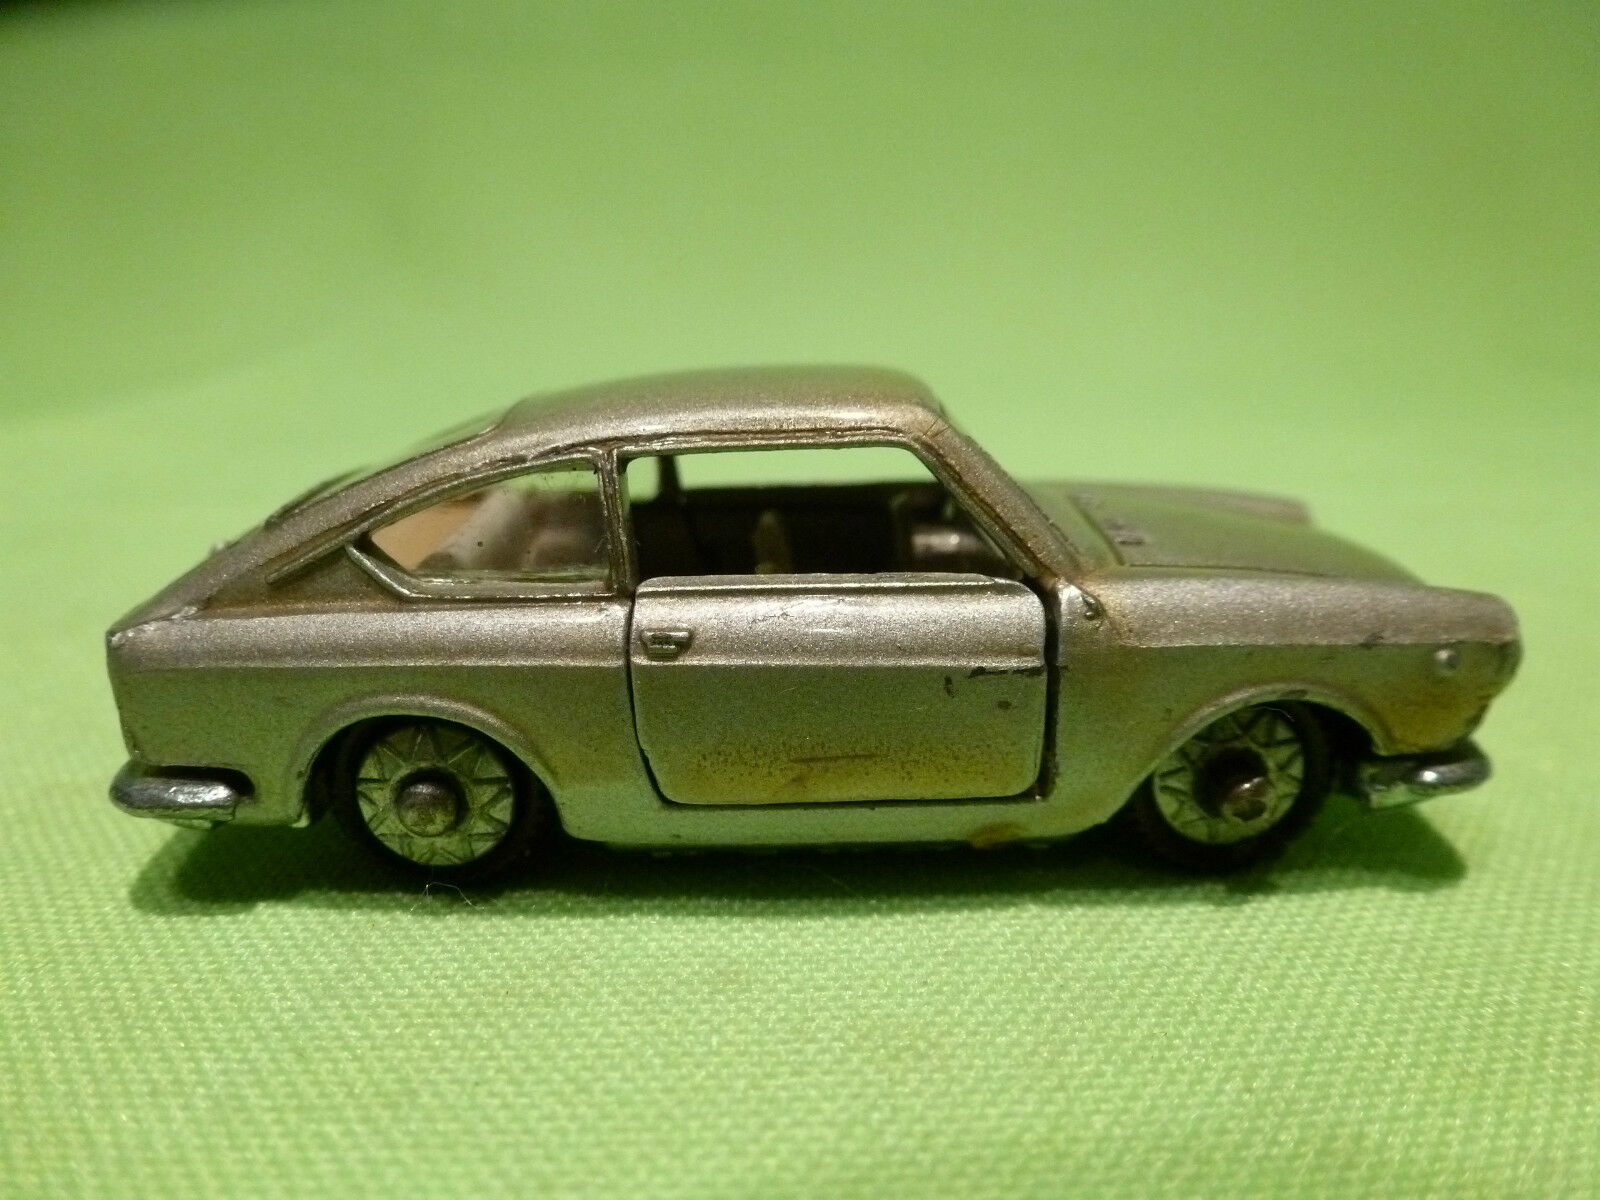 PENNY 30 FIAT 850 COUPE COUPE COUPE 1 66 - GREY METALLIC - RARE SELTEN - GOOD CONDITION 751392